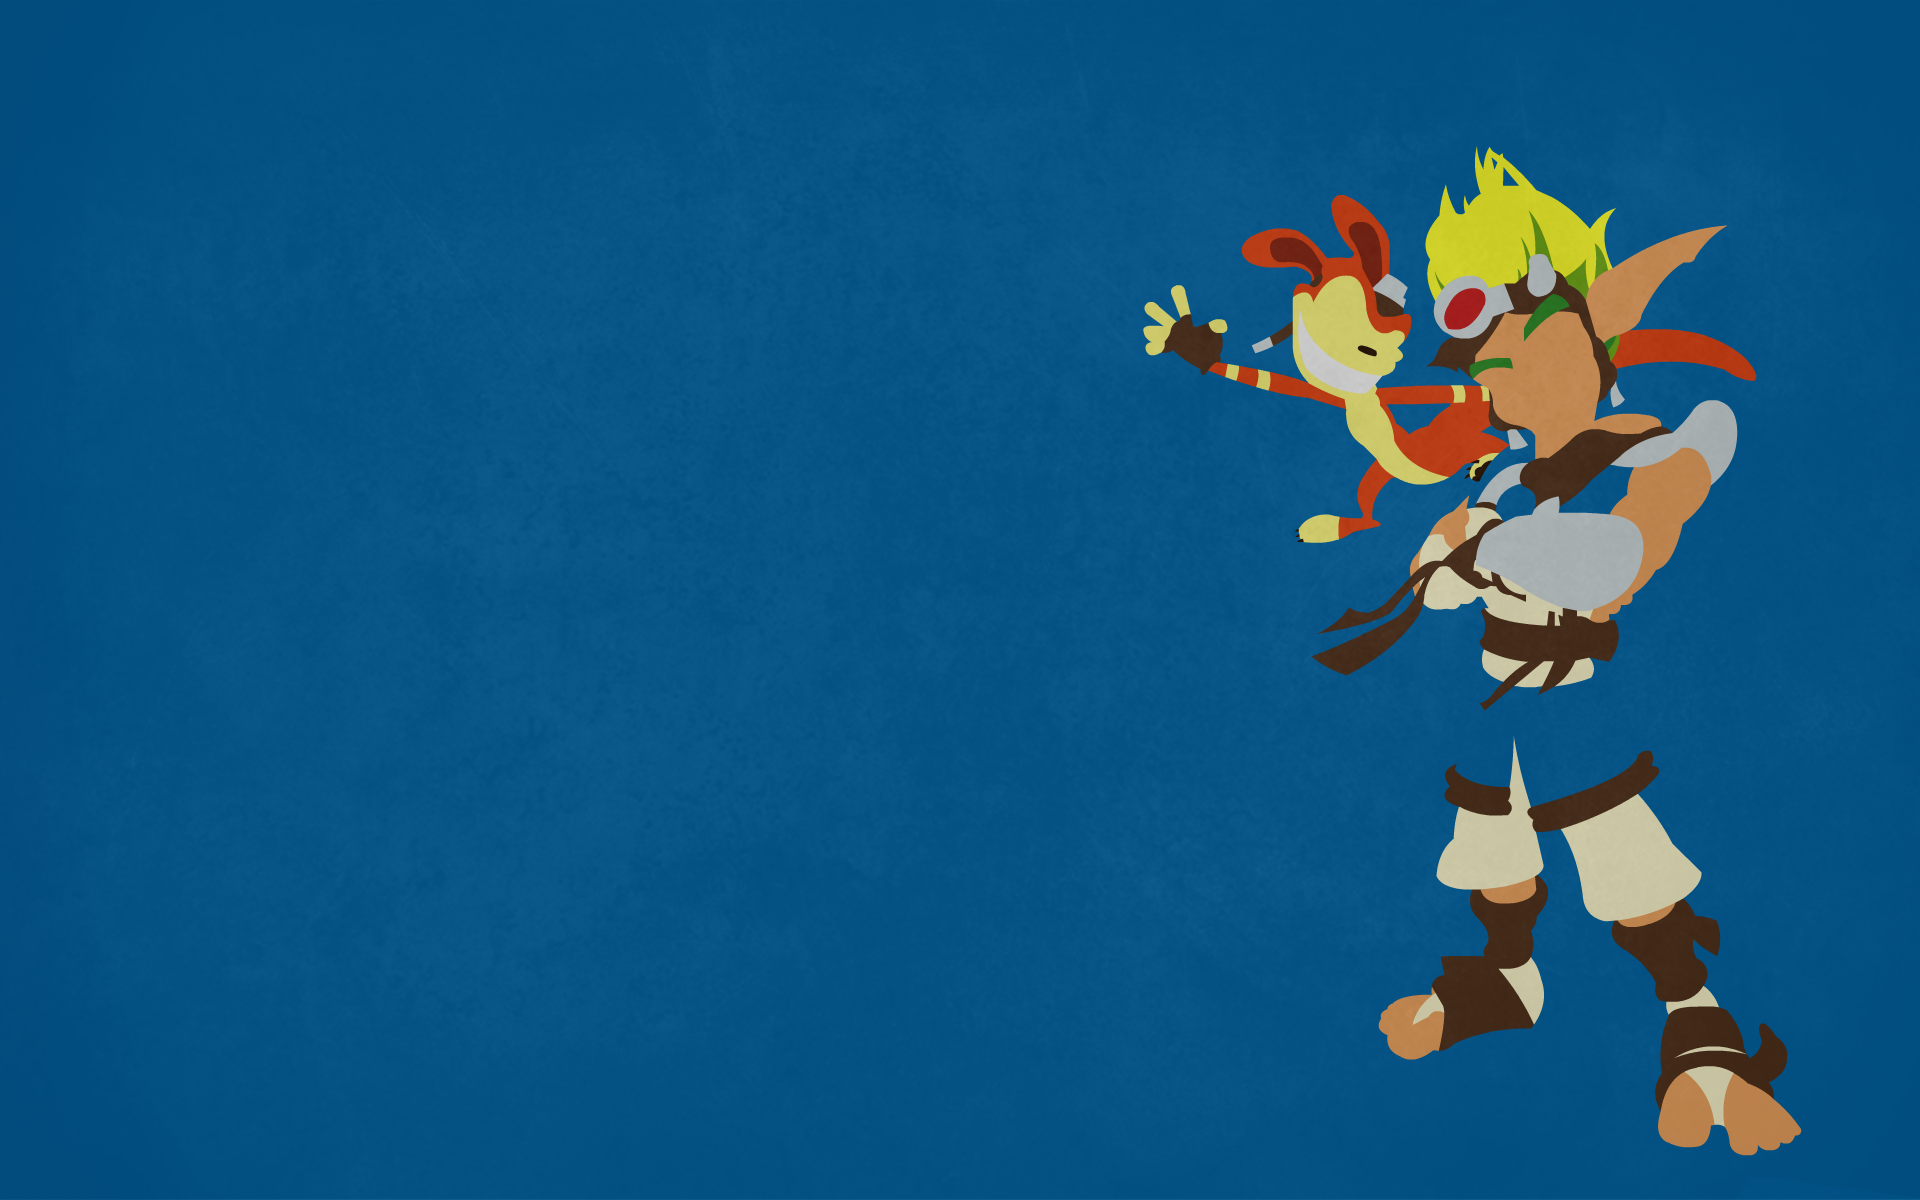 daxter images hd wallpaper - photo #8